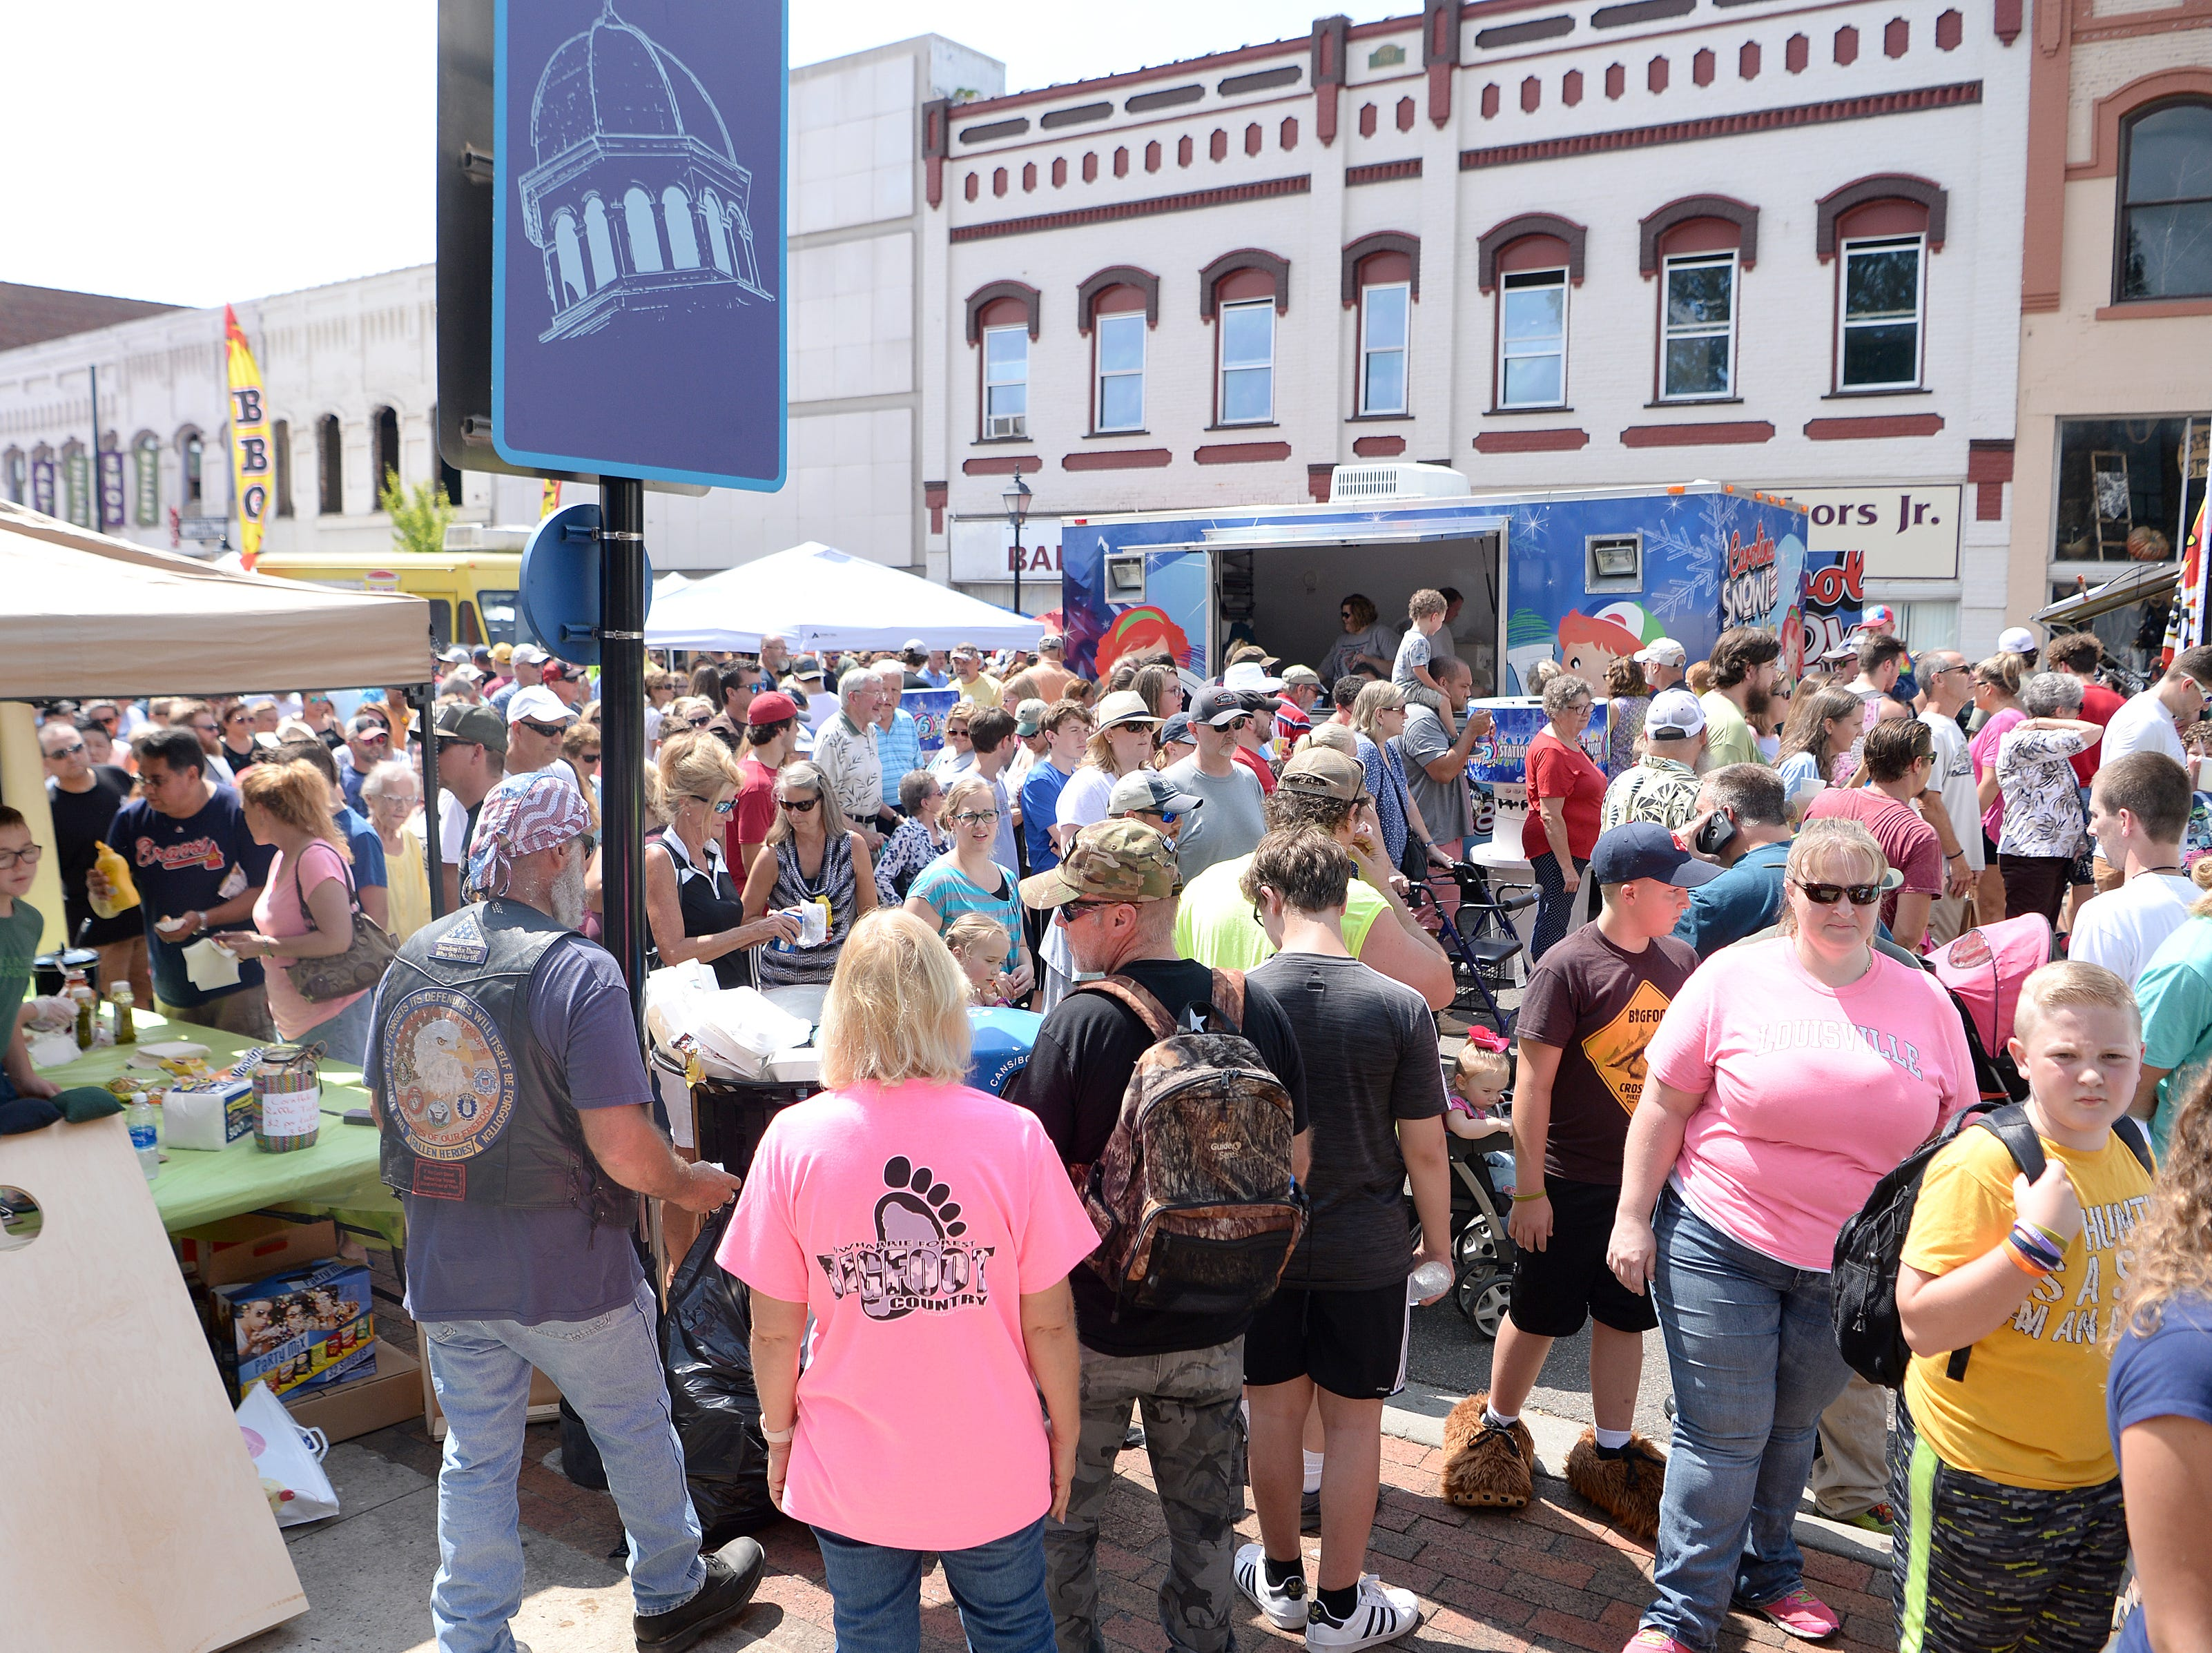 Thousands flooded the streets of Marion for the first ever WNC Bigfoot Festival in Marion on Sept. 8, 2018. The festival included booths, a Bigfoot calling and knocking competition and stories of Bigfoot encounters.